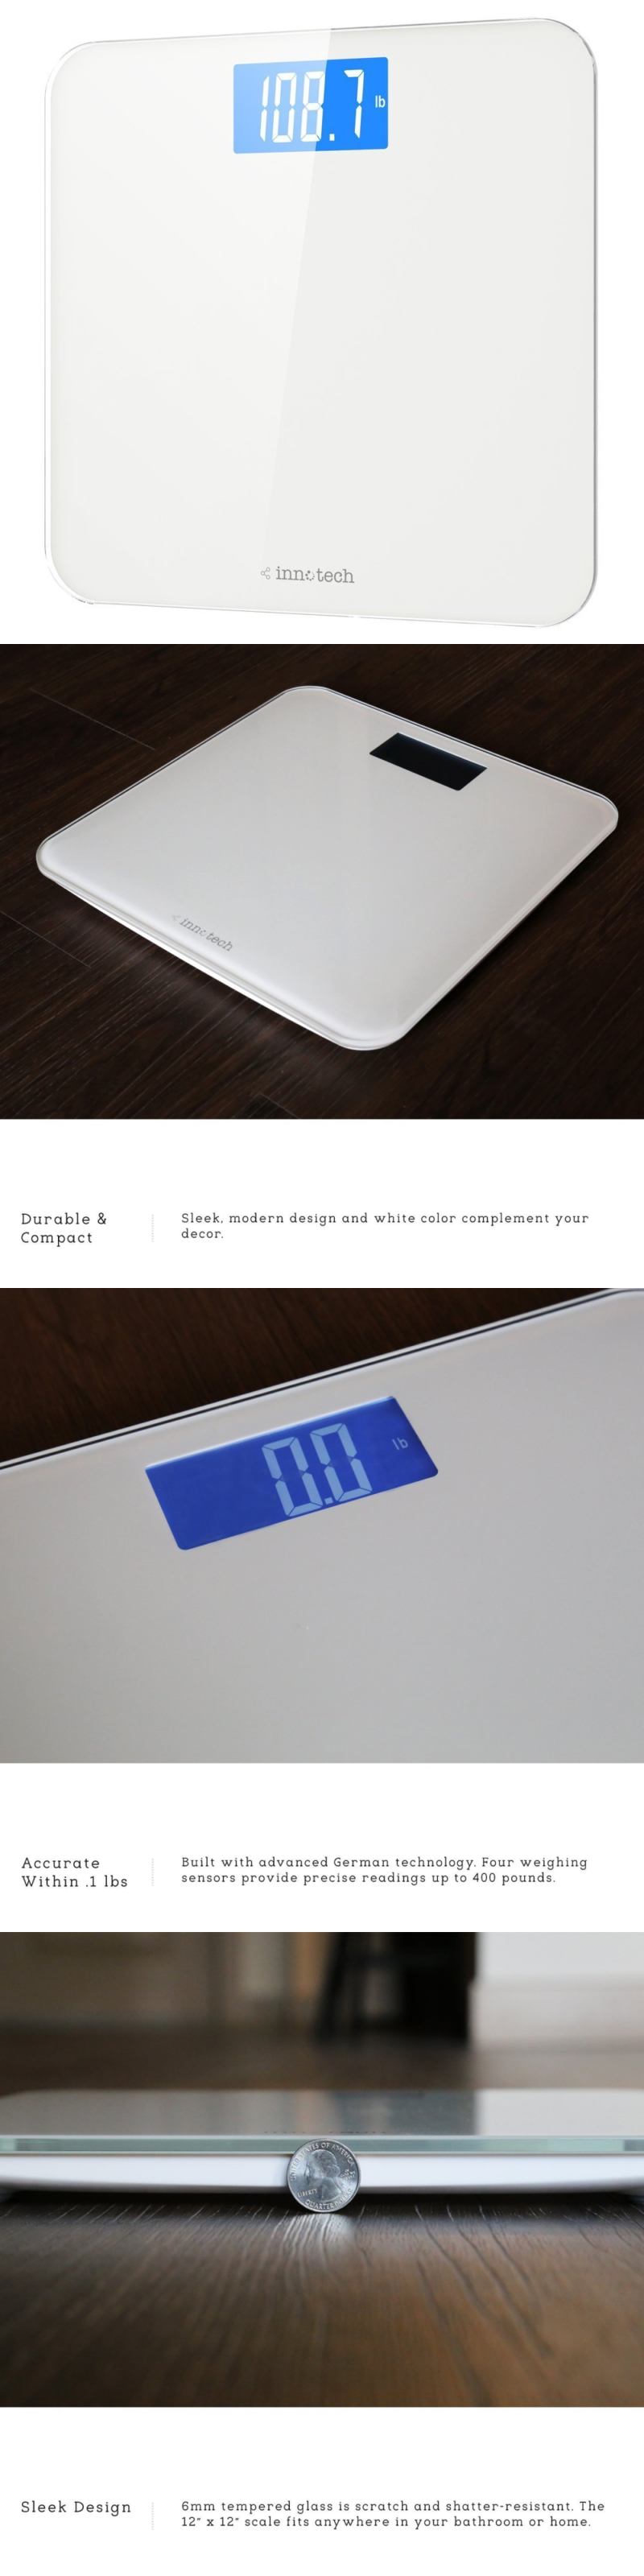 Scales Innotech Digital Bathroom Scale With Easy To Read Backlit Lcd